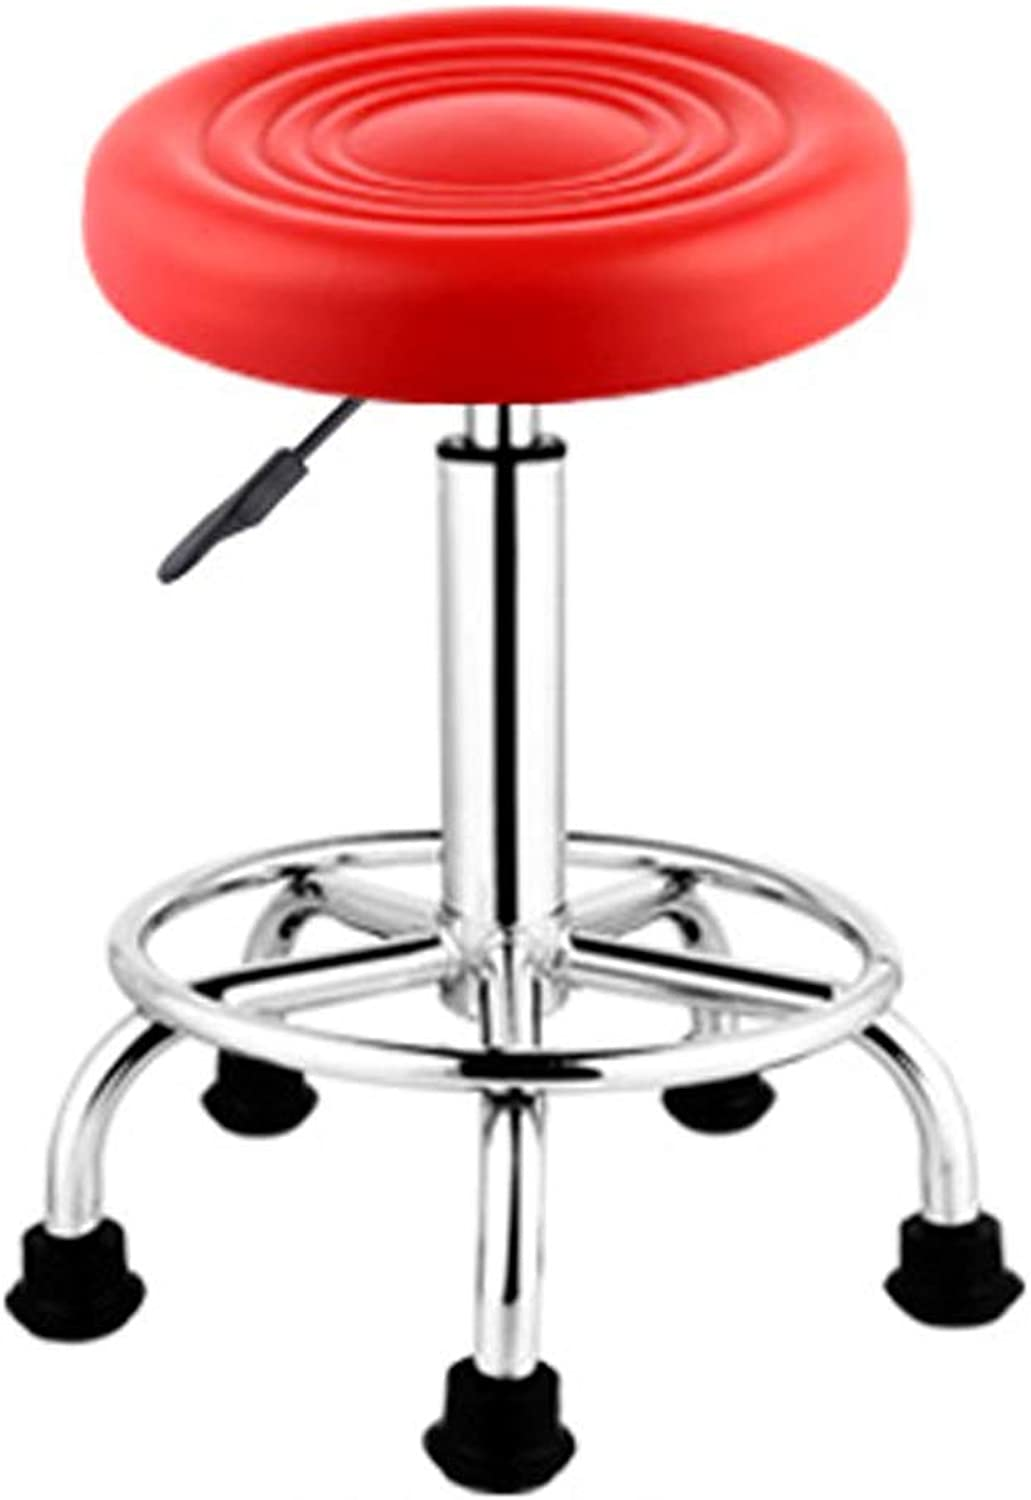 Barstools Beauty Stool Personalized Office Office Stool Lifting Chair Lifting 360° redation Bar Stool Computer Leisure Chair Home Fashion Chair (color   Red)